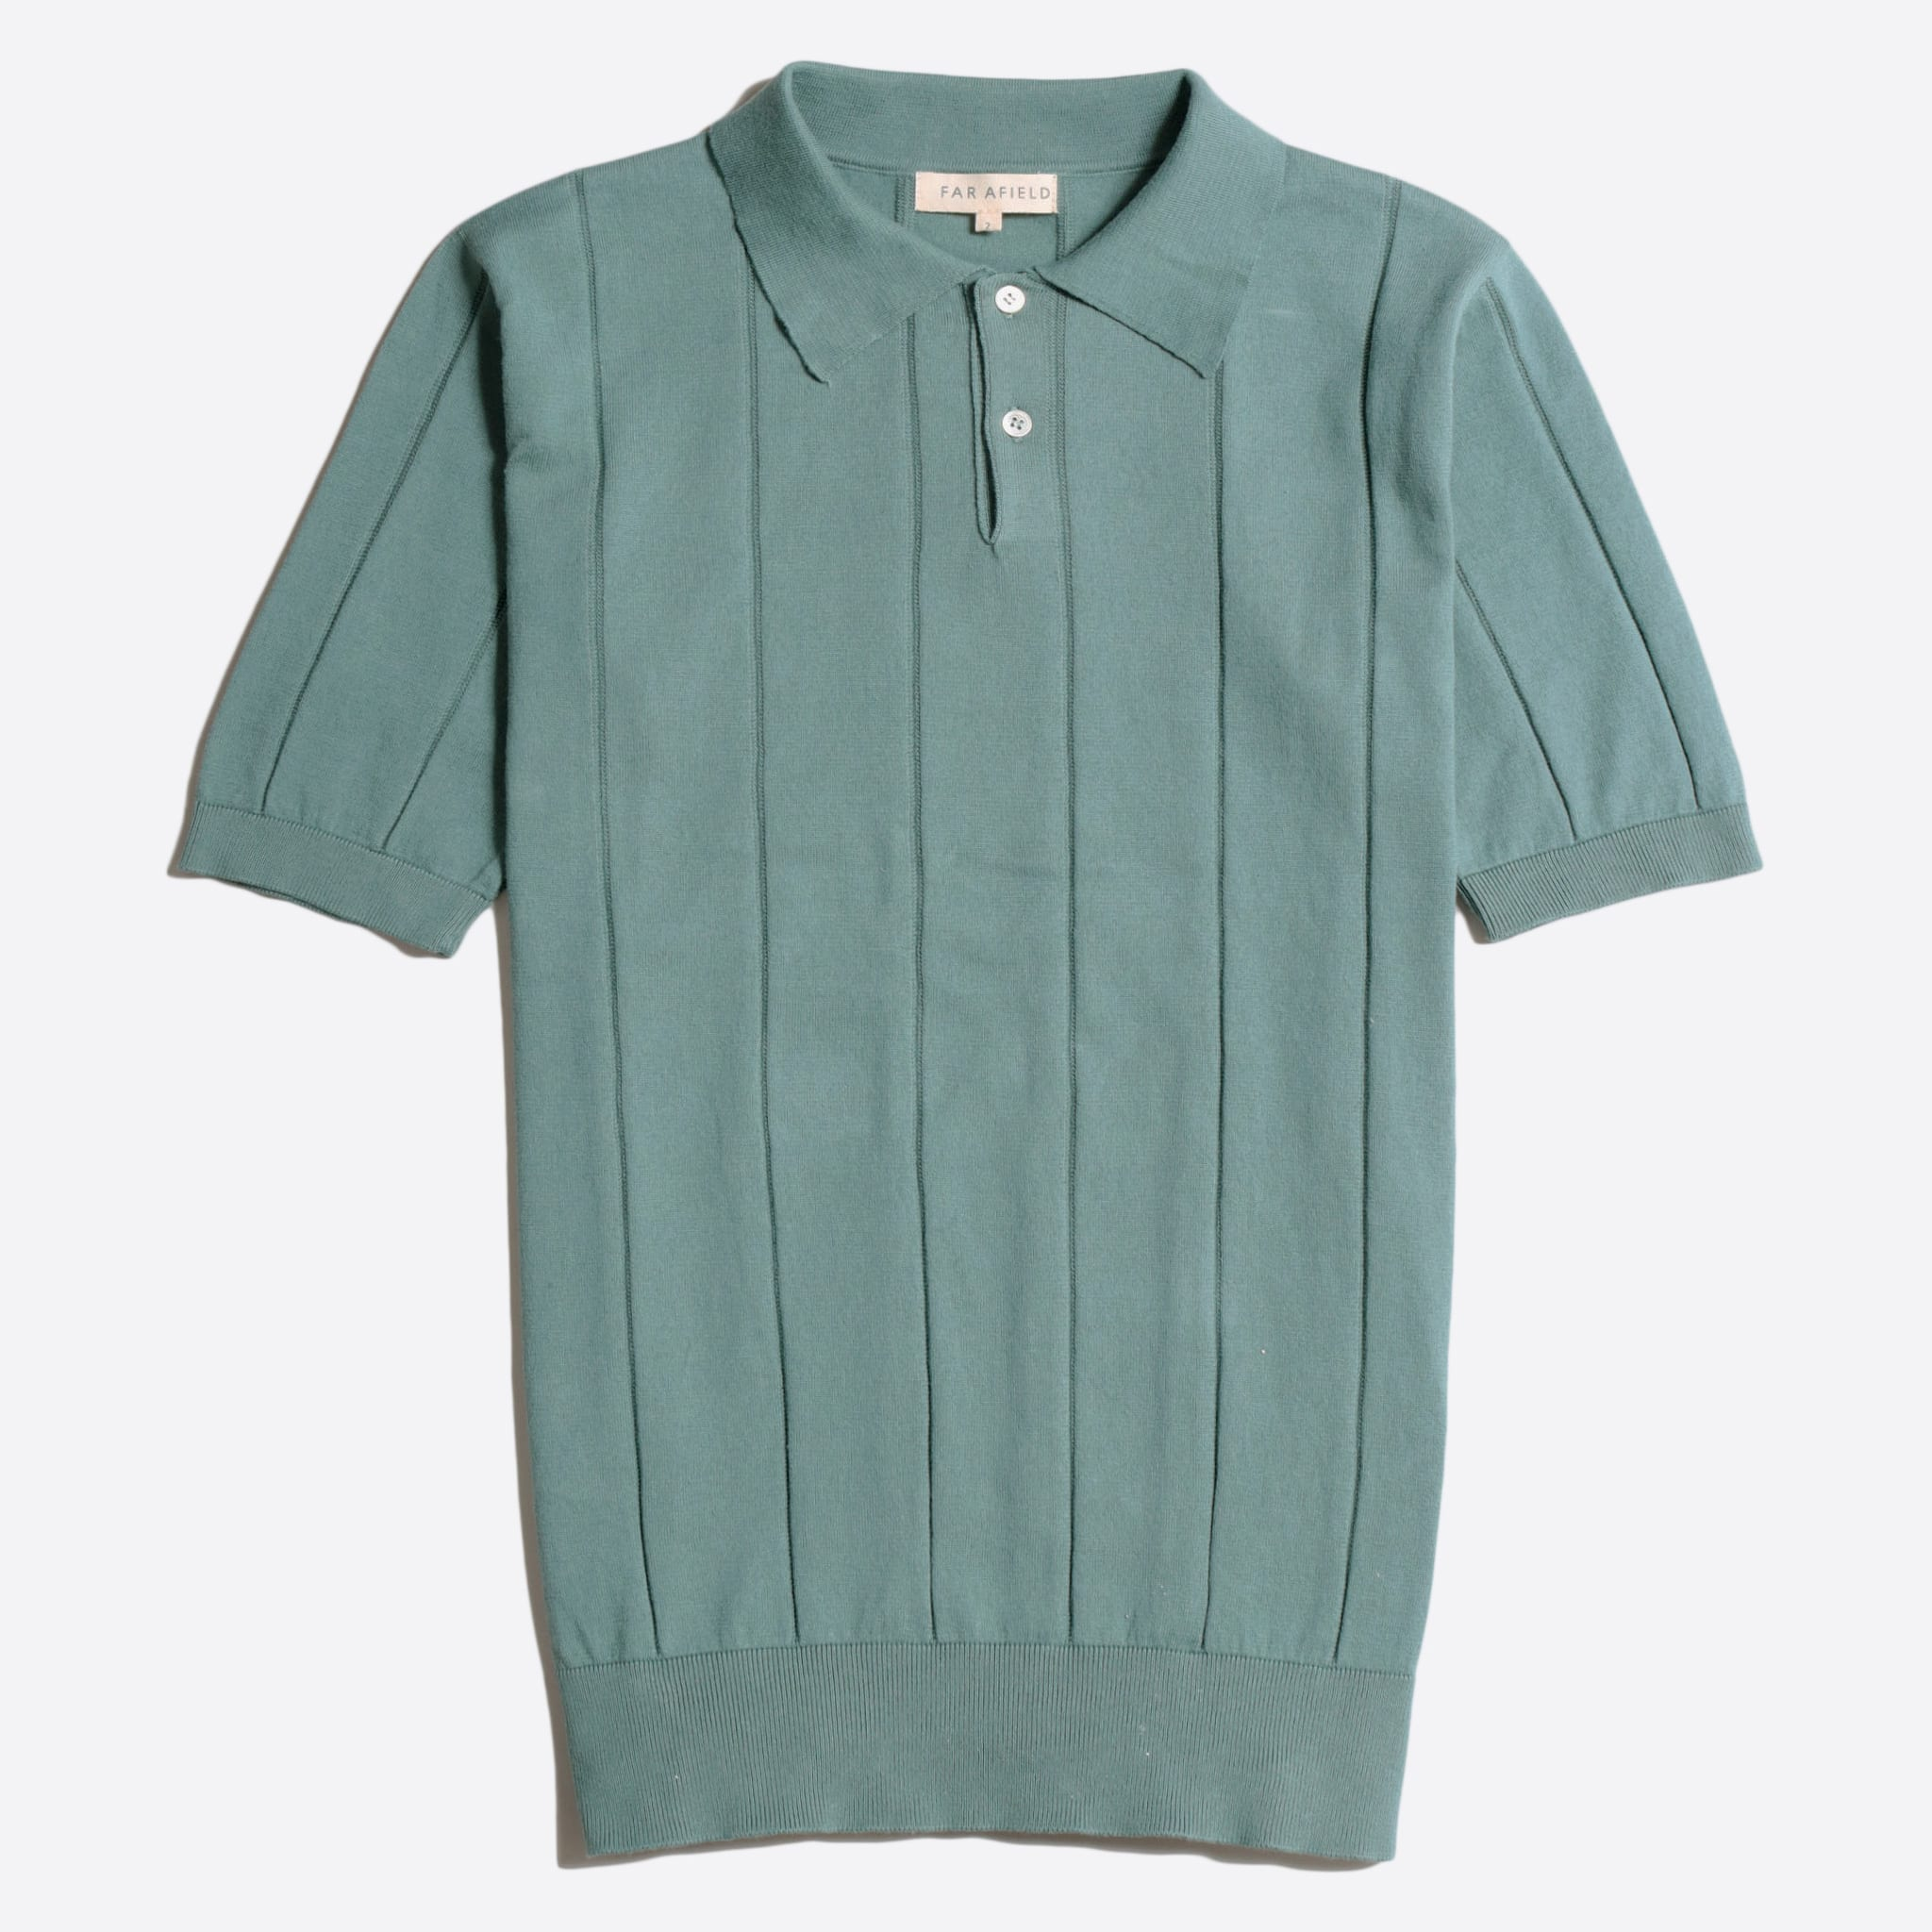 Far Afield Jacobs Short Sleeve Polo a Sagebrush Green Organic Cotton FabricMid Century Inspired